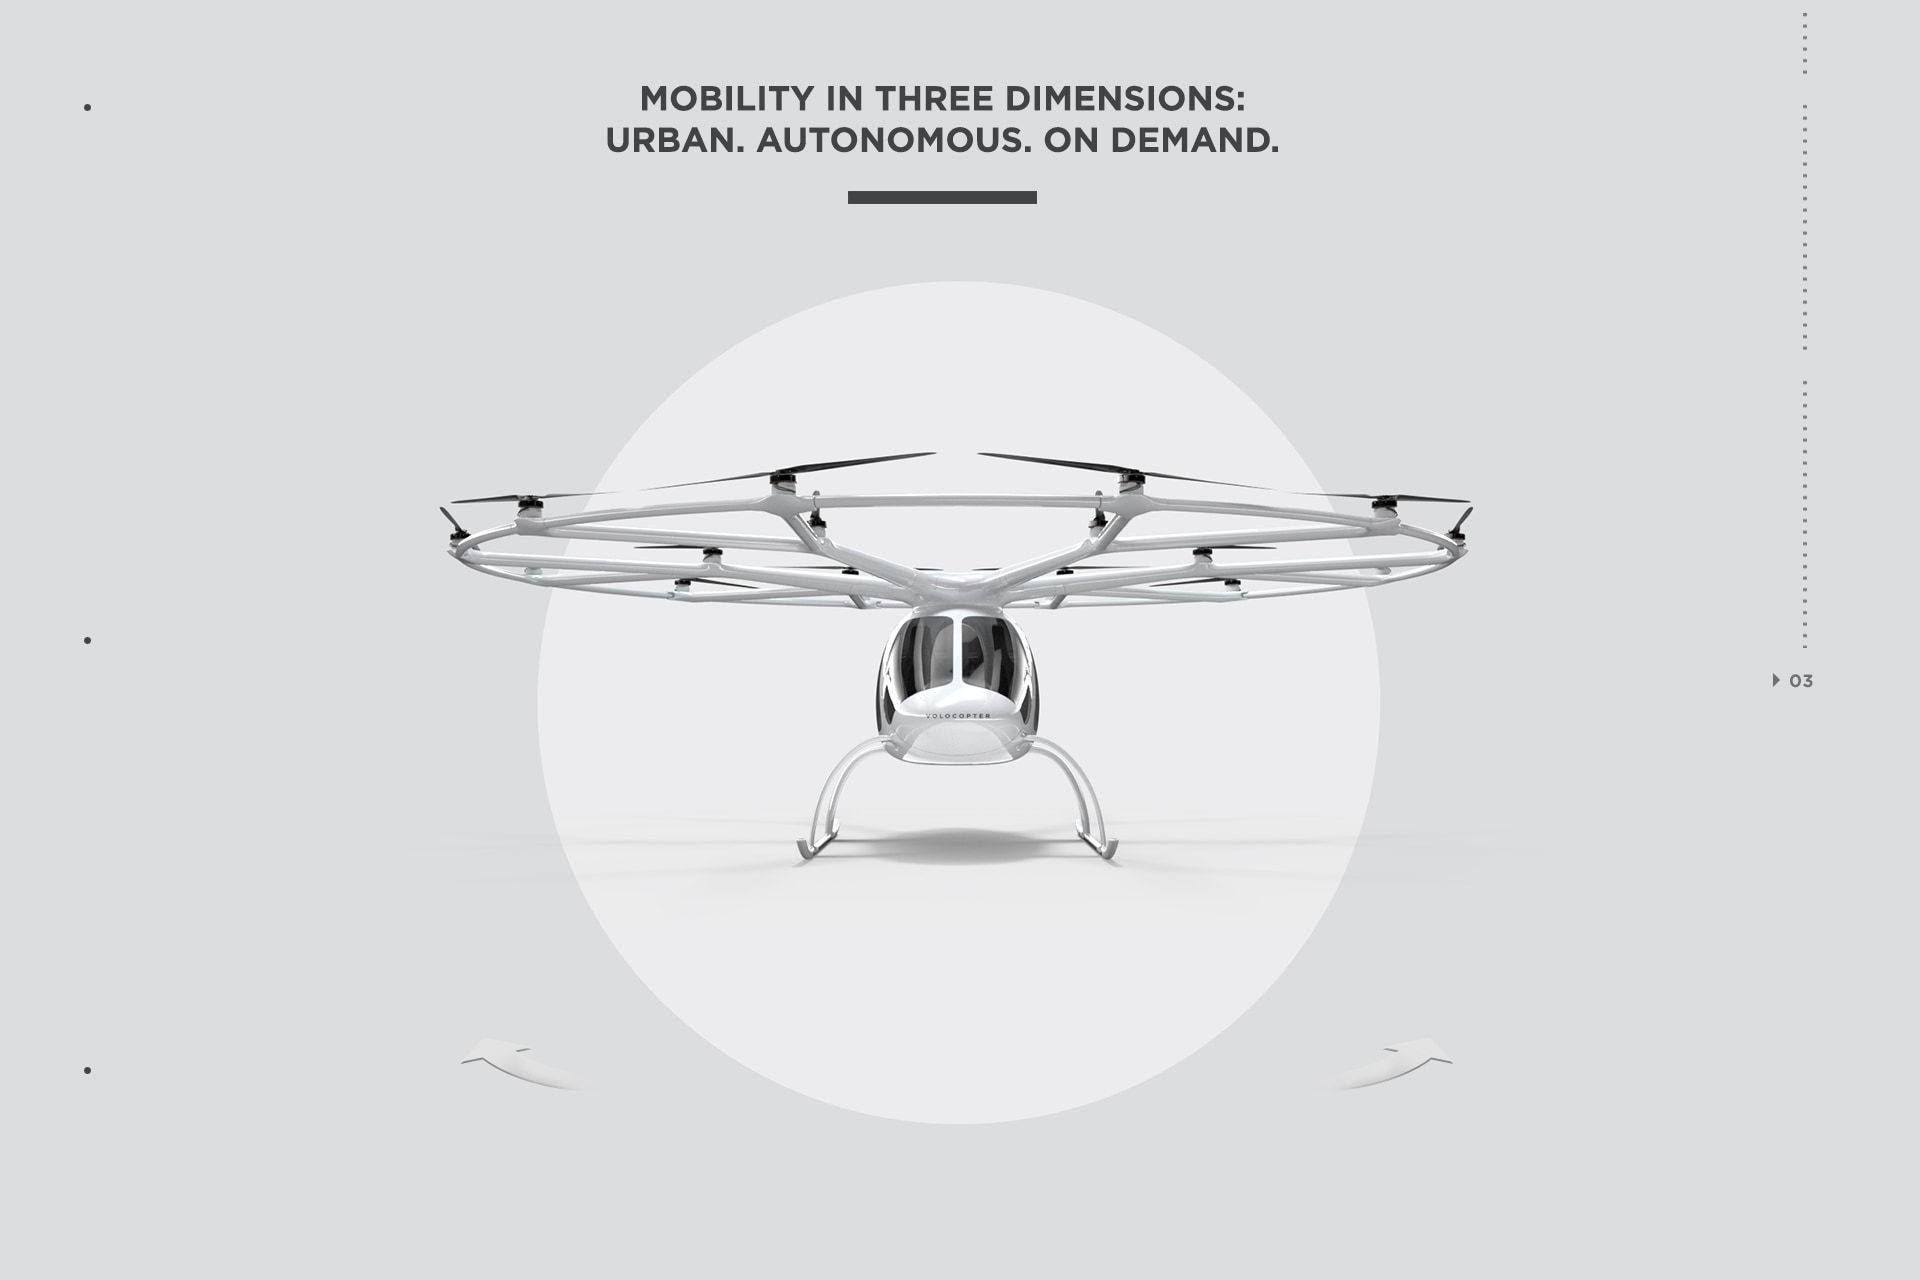 Volocopter Mobility in three dimensions